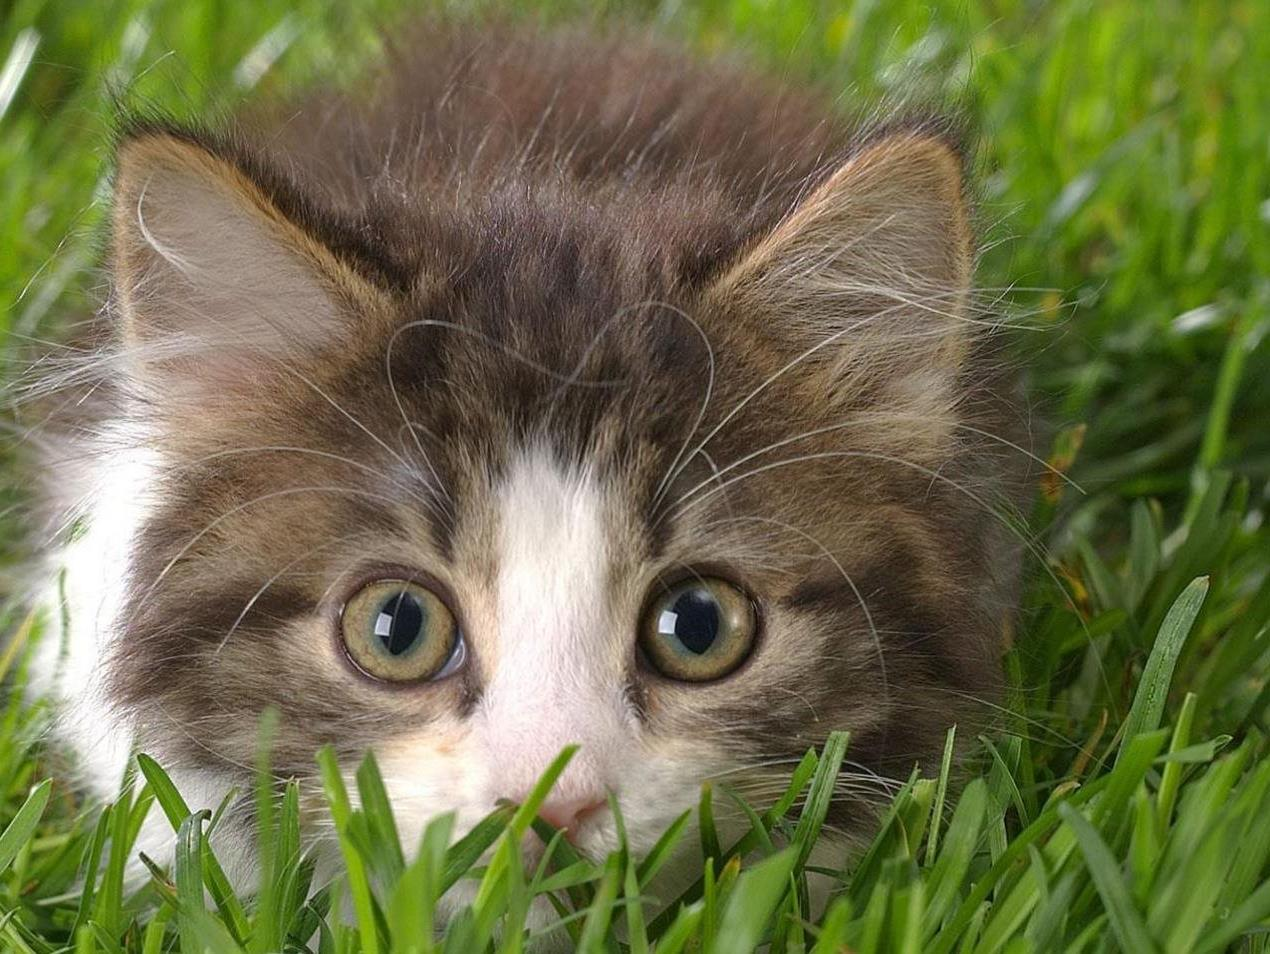 A small kitten hiding in grass